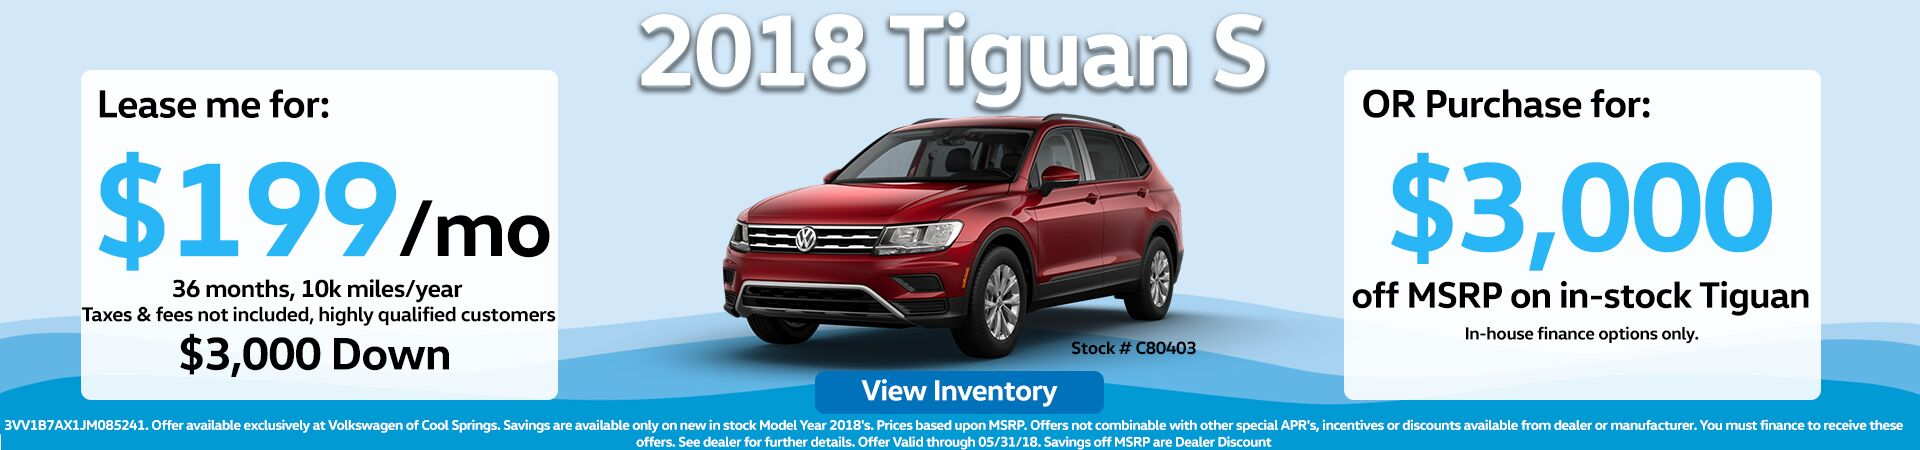 Tiguan Offer May